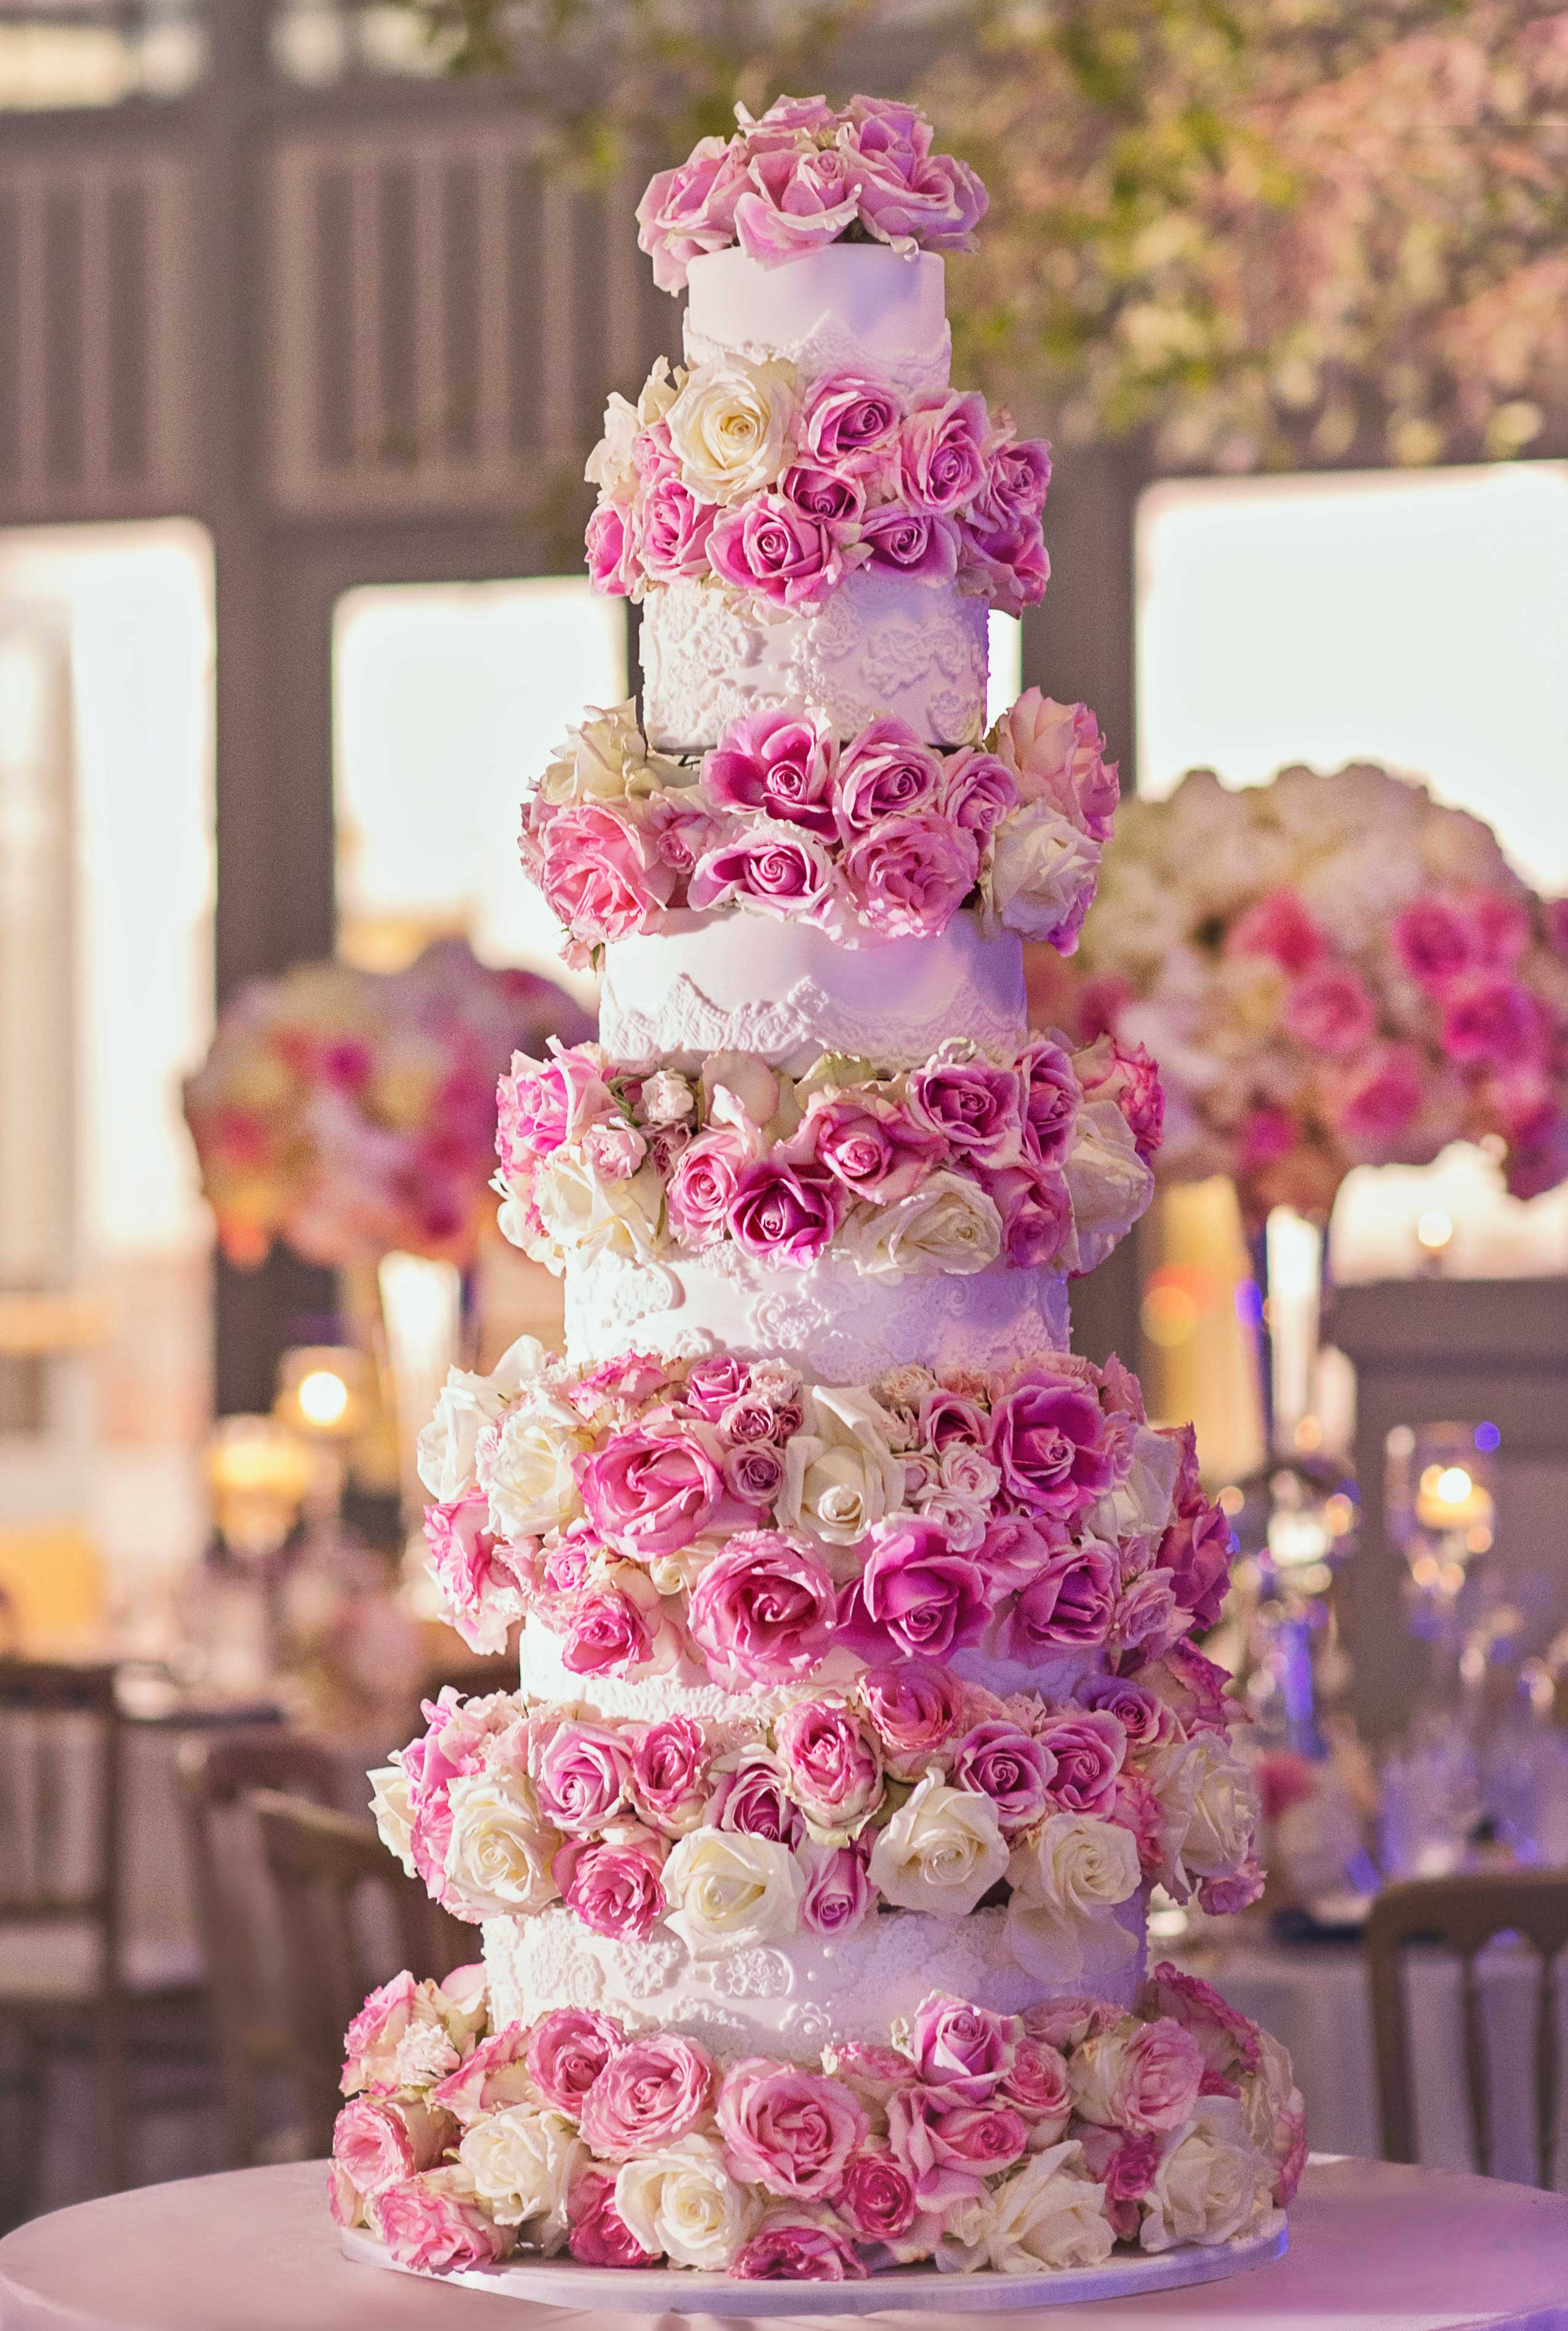 Wedding cake with pink flower tiers in between layers